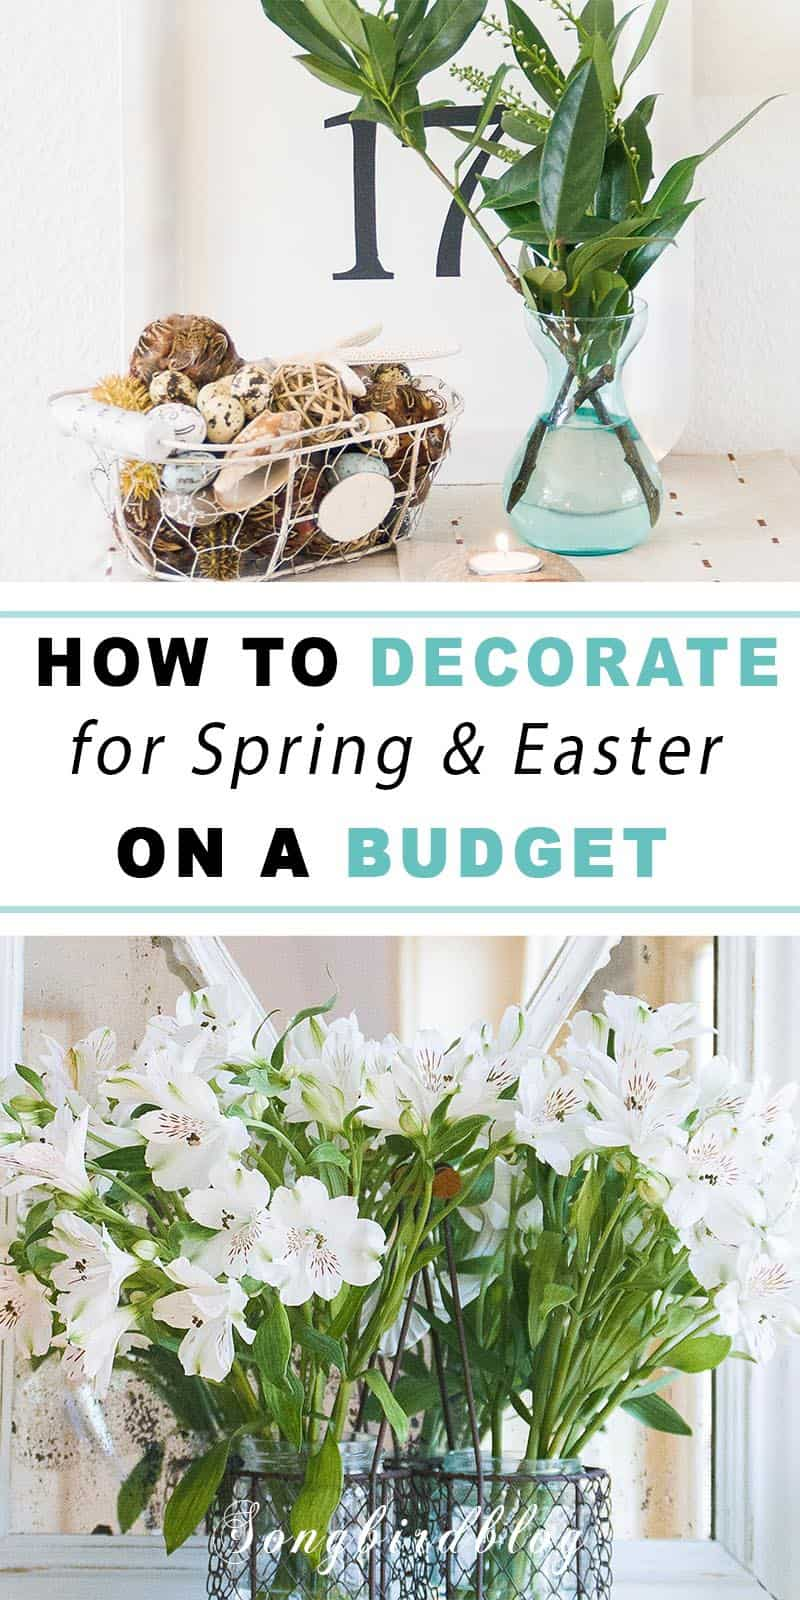 Collage image for decorating on a budget for Spring